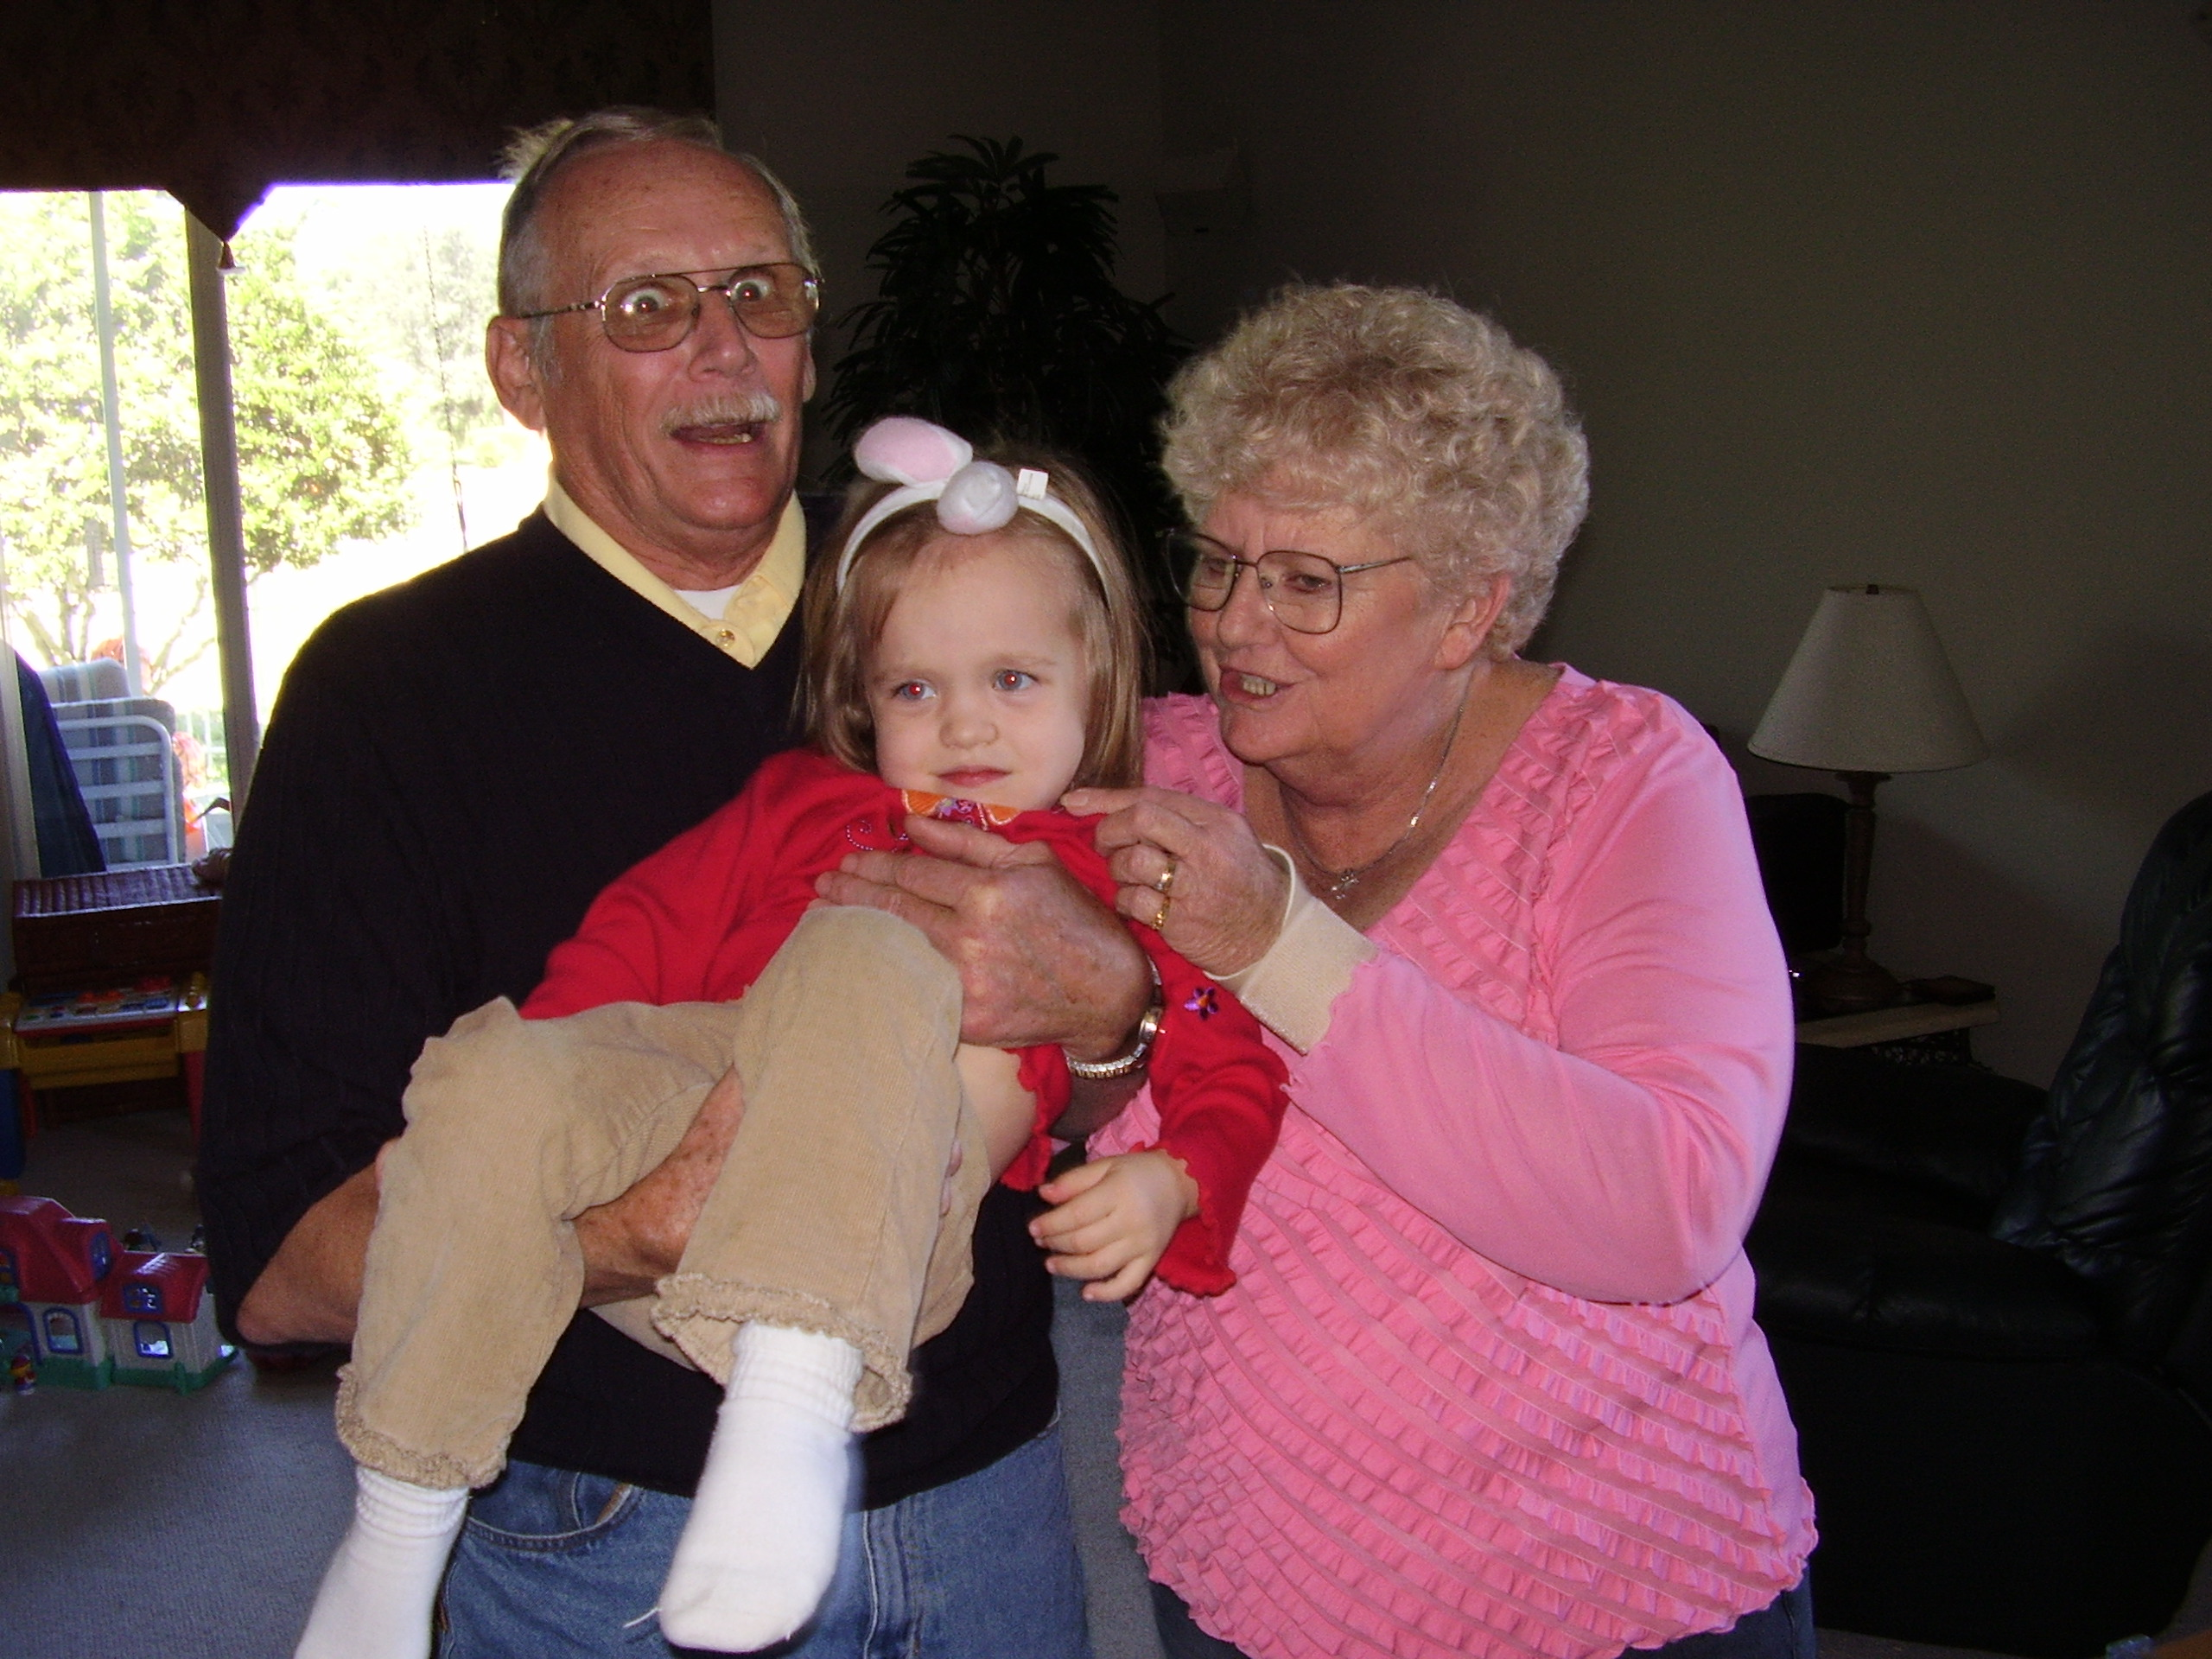 Jim & Vikki and our daughter Jennifer on a visit to their home in Oviedo October 2006.